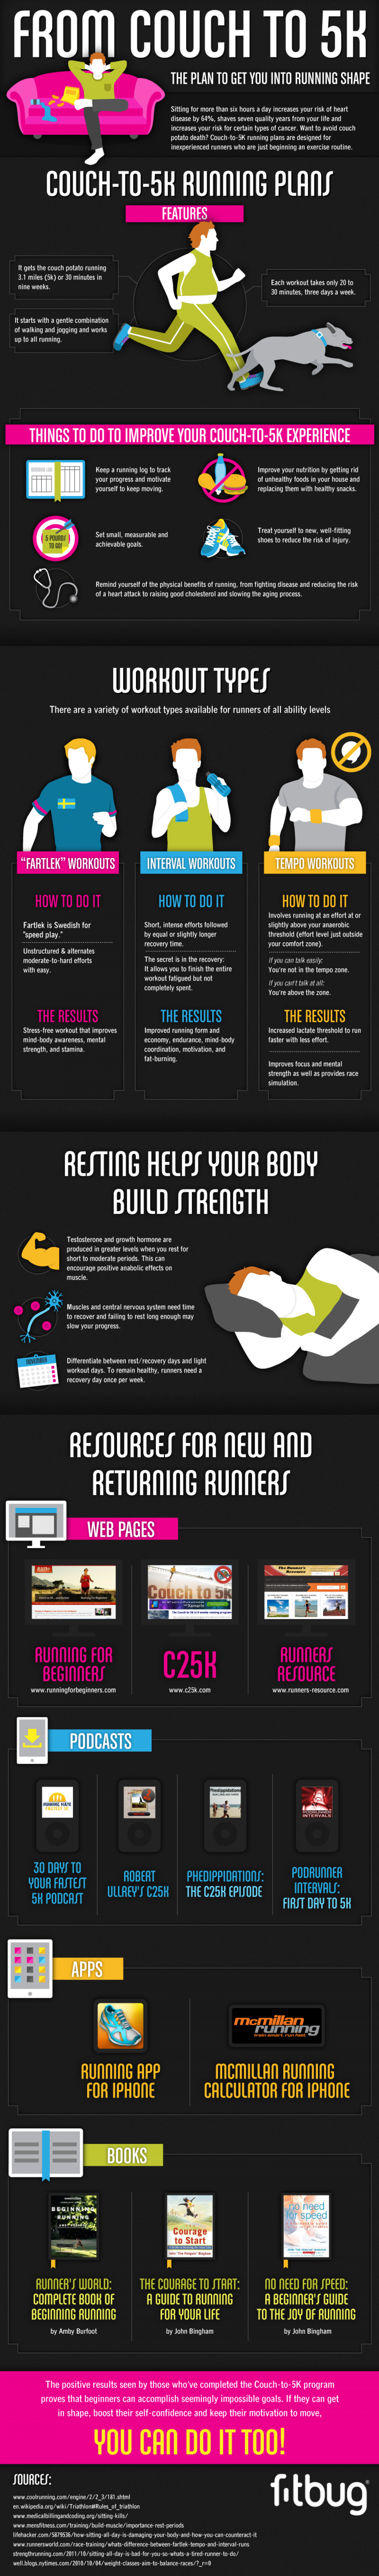 From Couch to 5K  Infographic